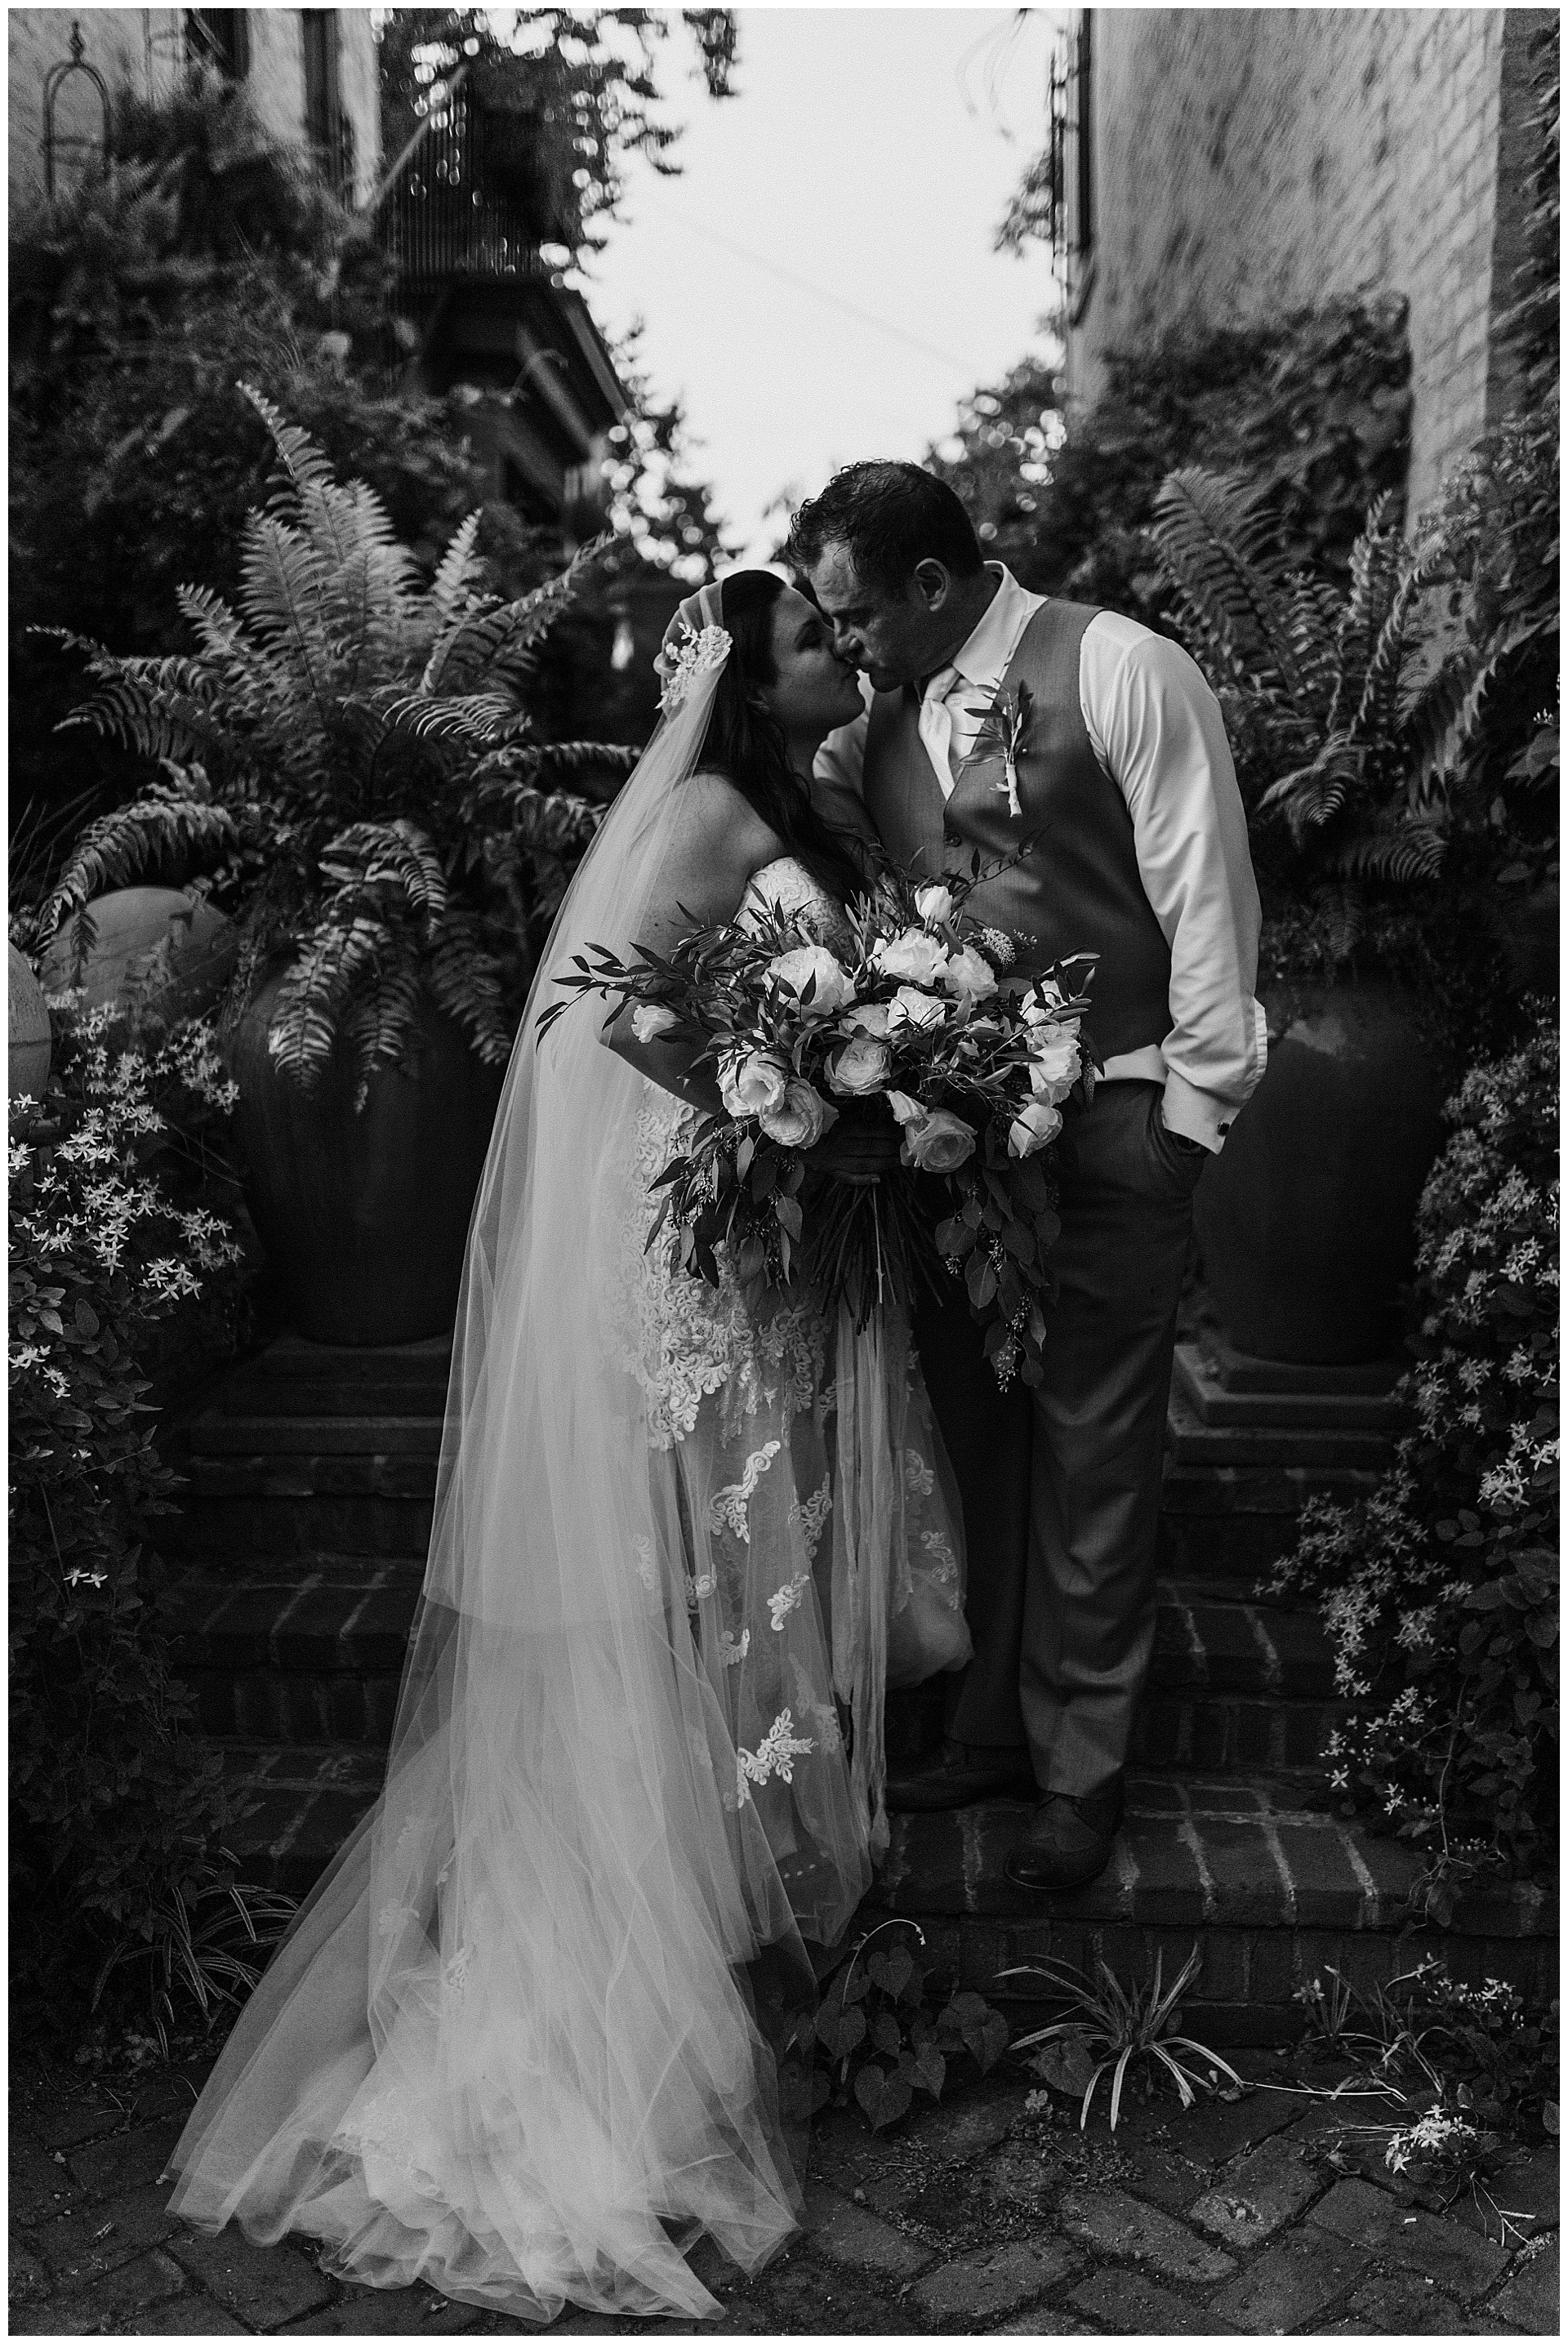 kelton house wedding columbus ohio_mia dimare photo66.jpg